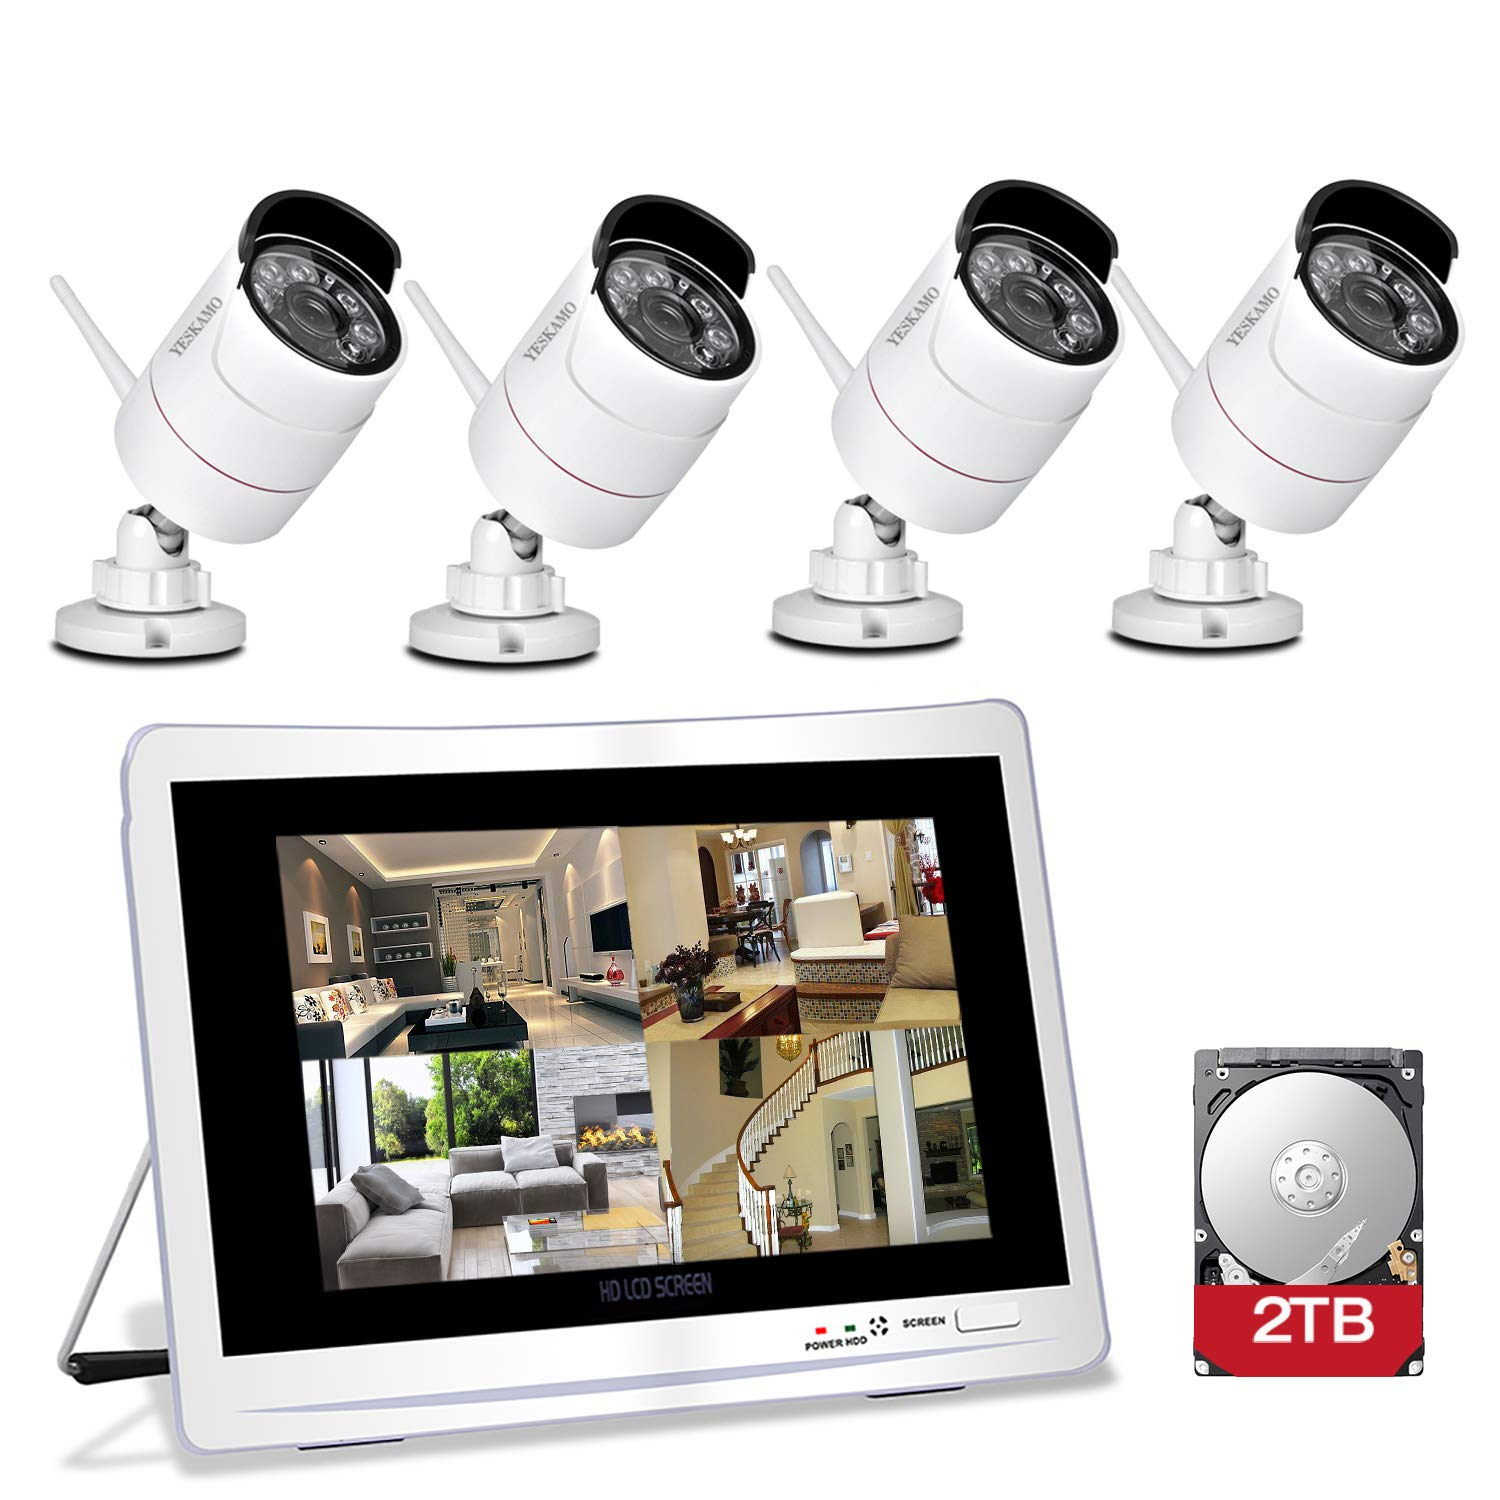 YESKAMO Wireless CCTV Home Security Camera Systems with 12